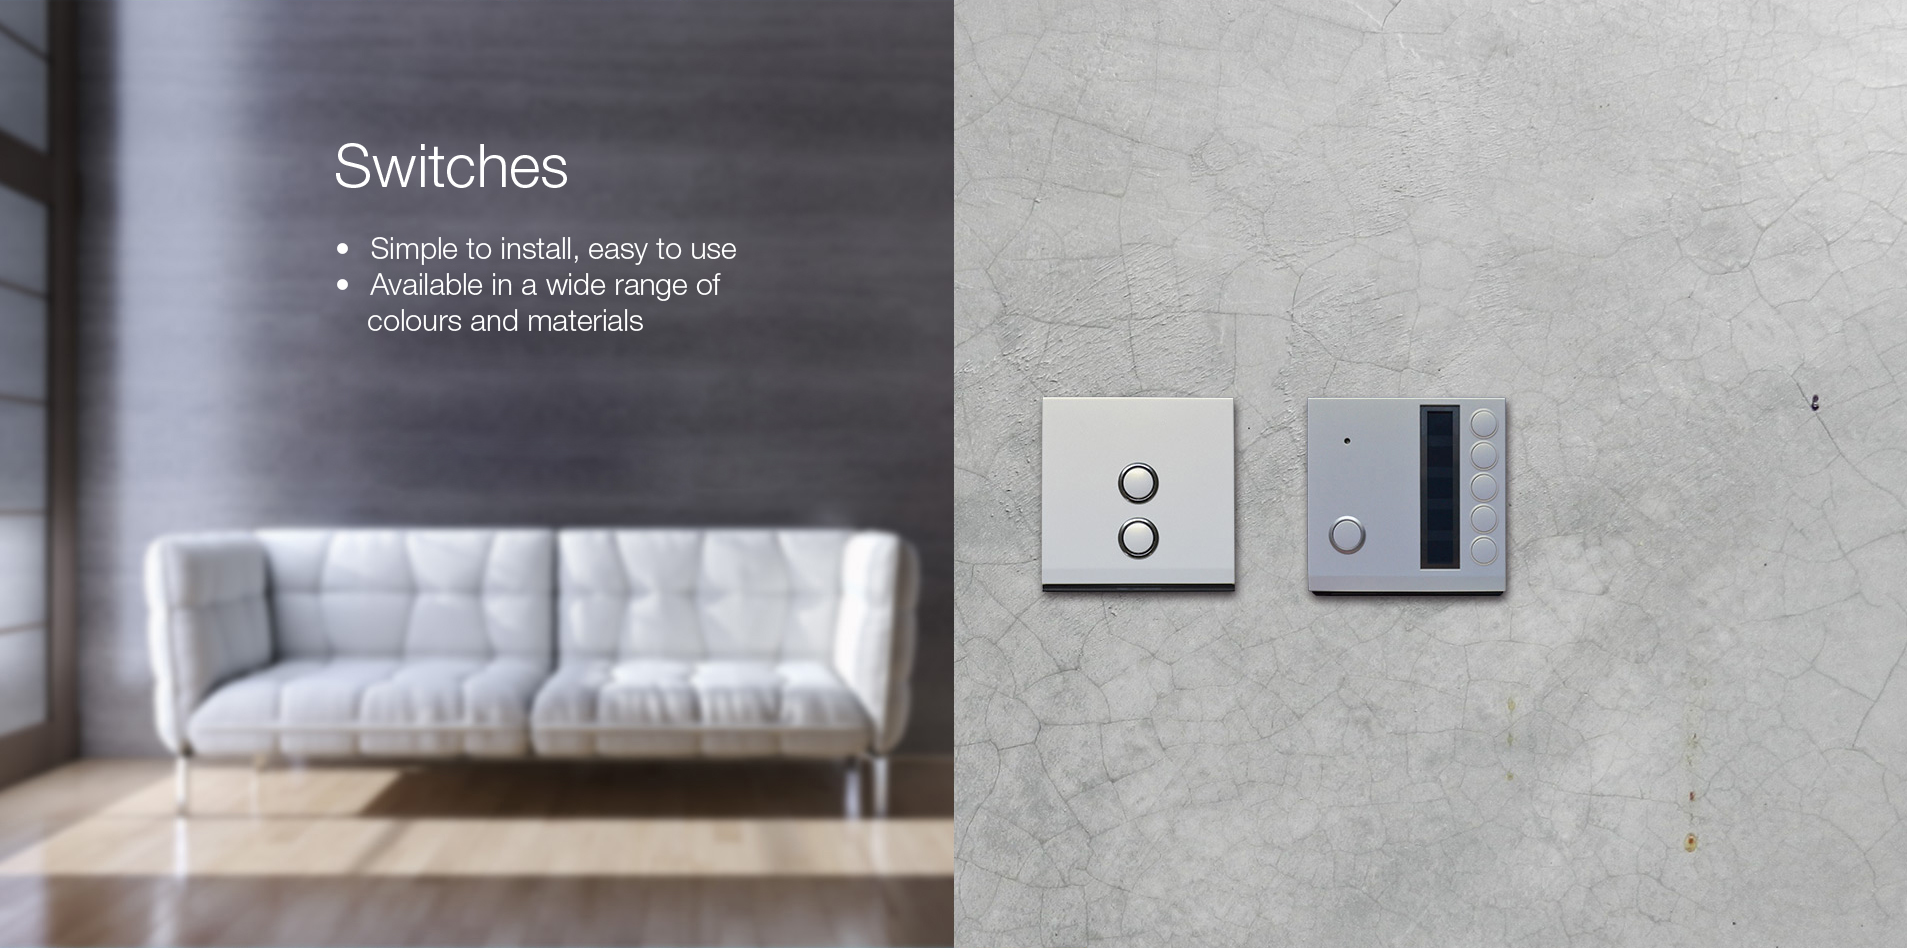 Smat switch - Smart Home Luxury Pack